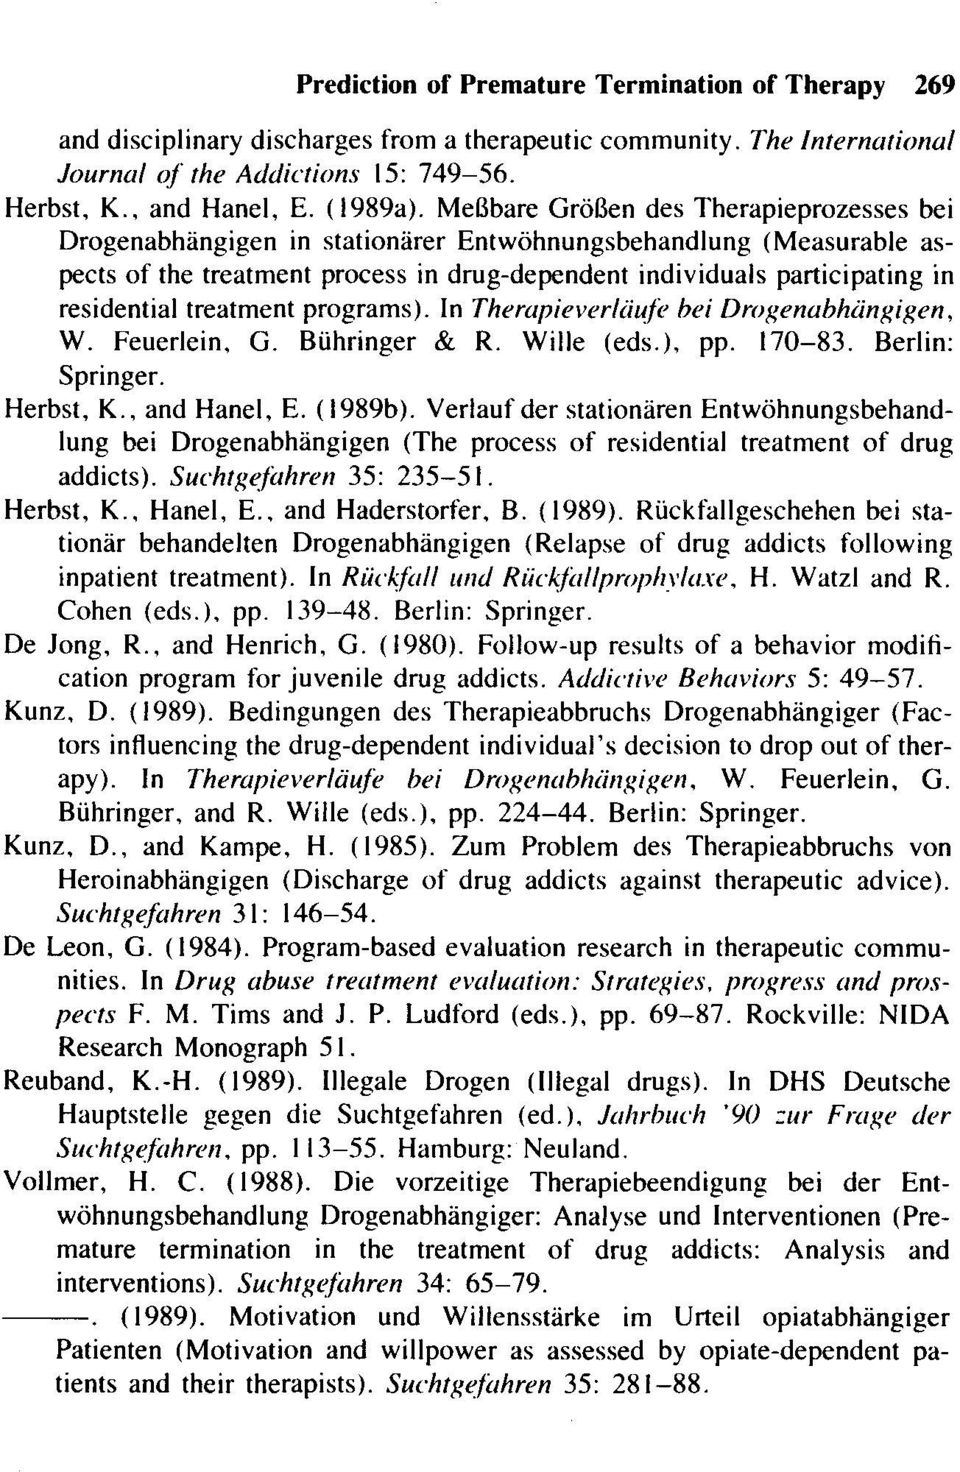 treatment programs). In Therapieverläufe bei Drogenabhängigen, W. Feuerlein, G. Bühringer & R. Wille (eds.), pp. 170-83. Berlin: Springer. Herbst, K., and Hanel, E. (1989b).